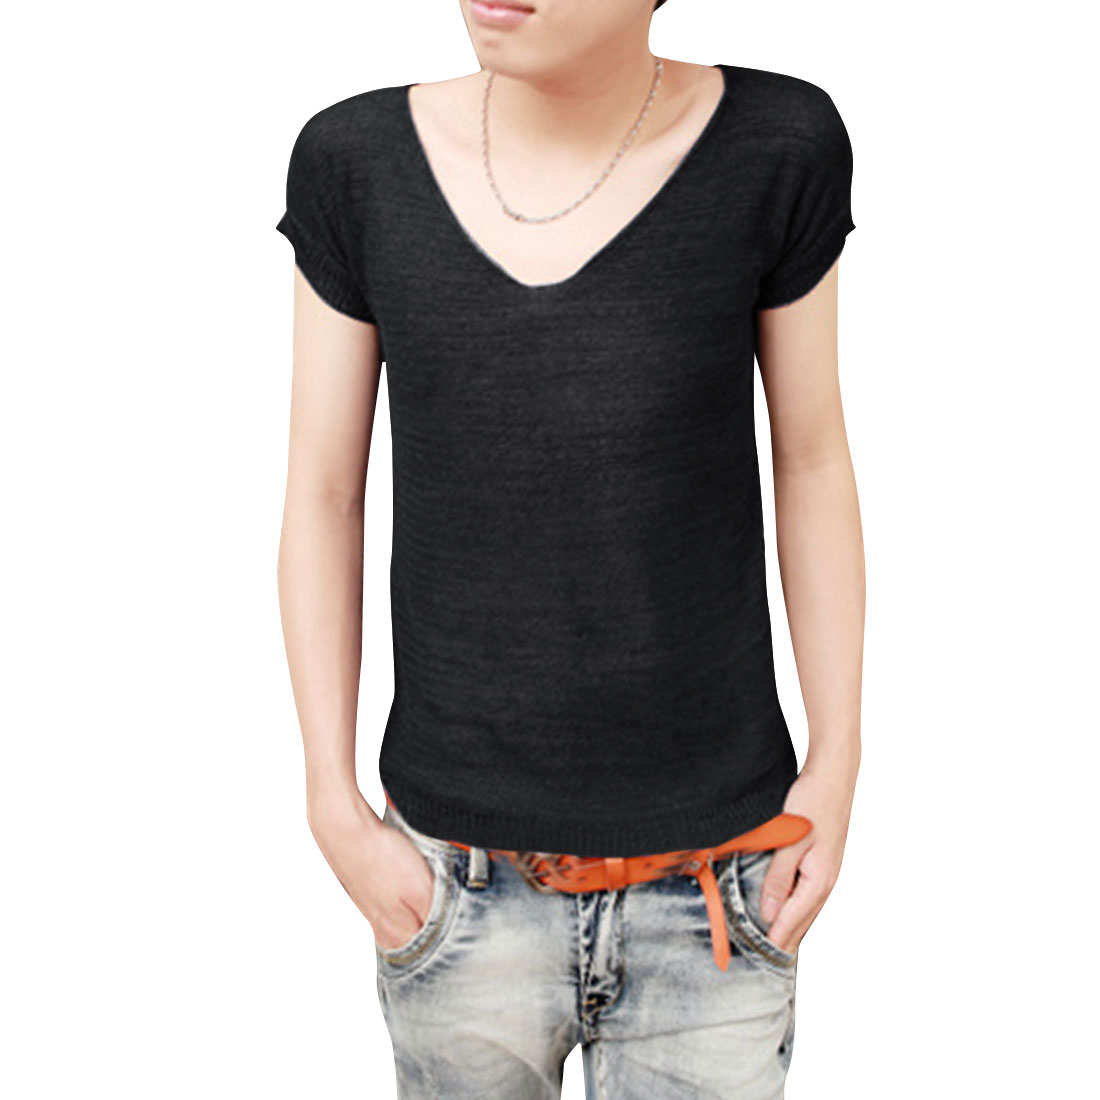 Men Hollow Out Design Short Sleeve Black Knit Shirt S